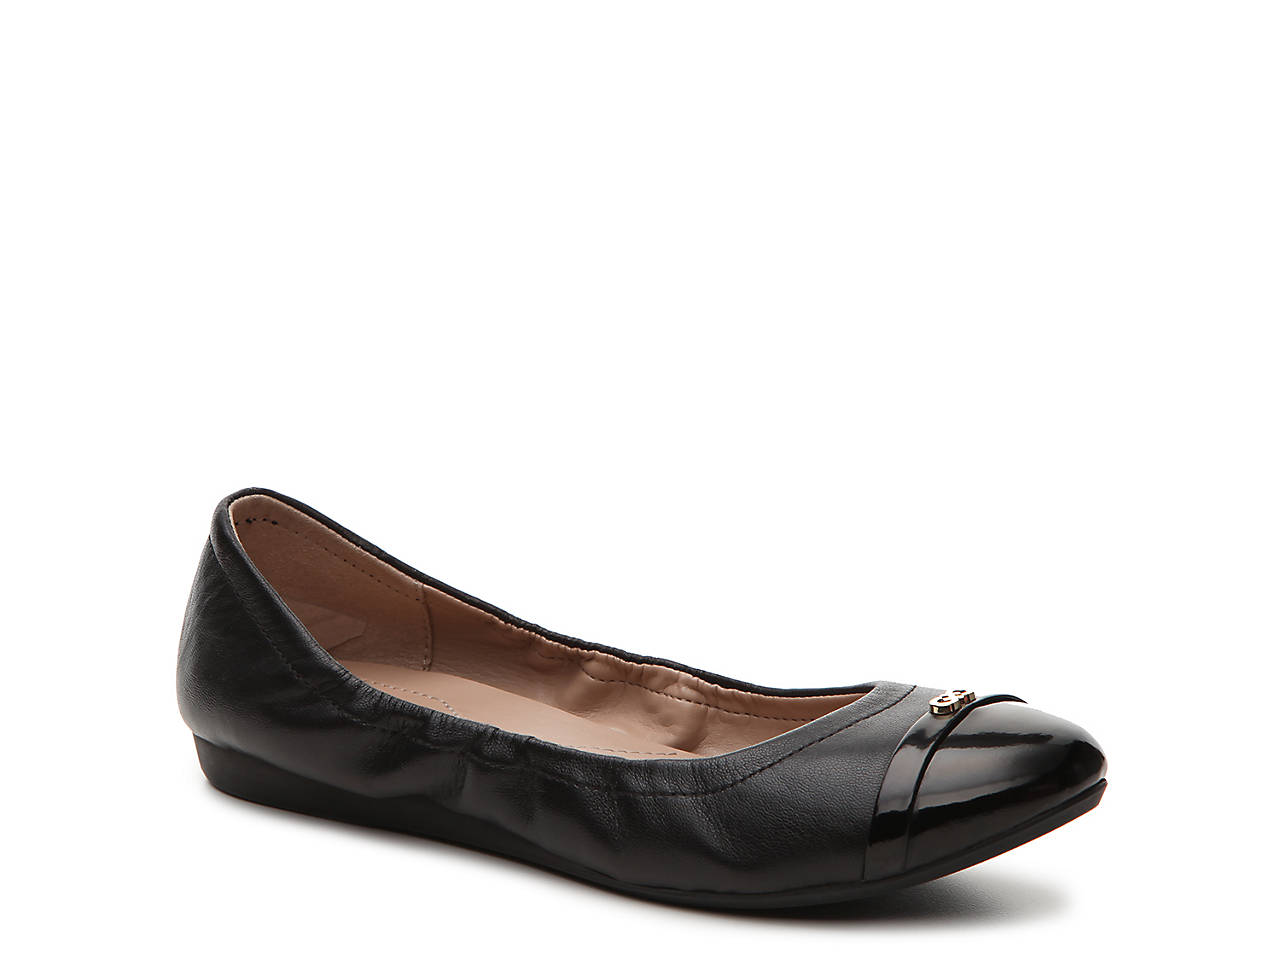 f654afd794f5 Cole Haan Elsie Ballet Flat Women s Shoes